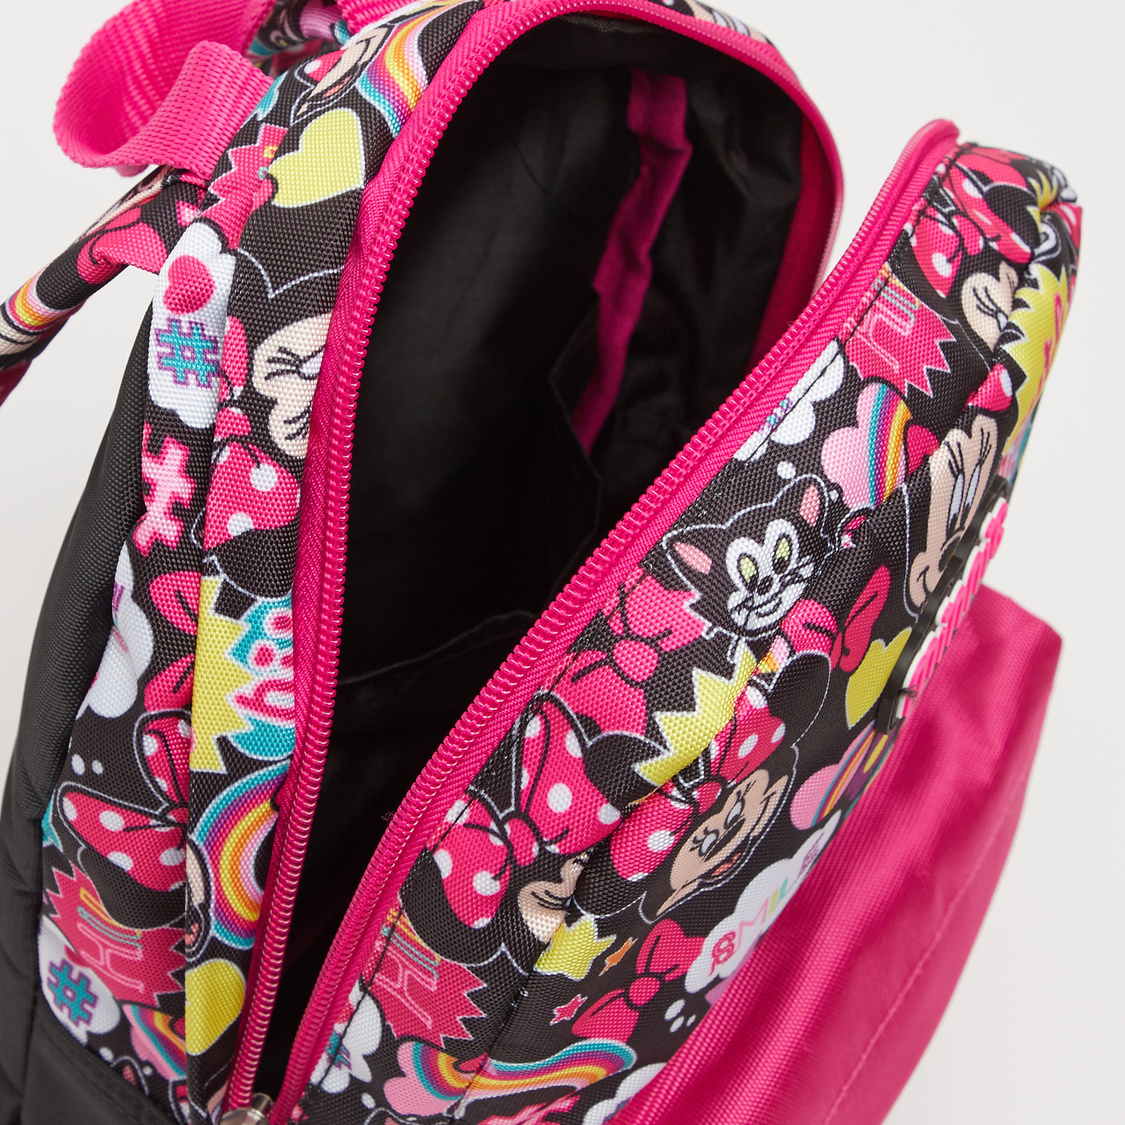 Minnie Mouse Print Backpack with Adjustable Shoulder Straps - 12 Inches